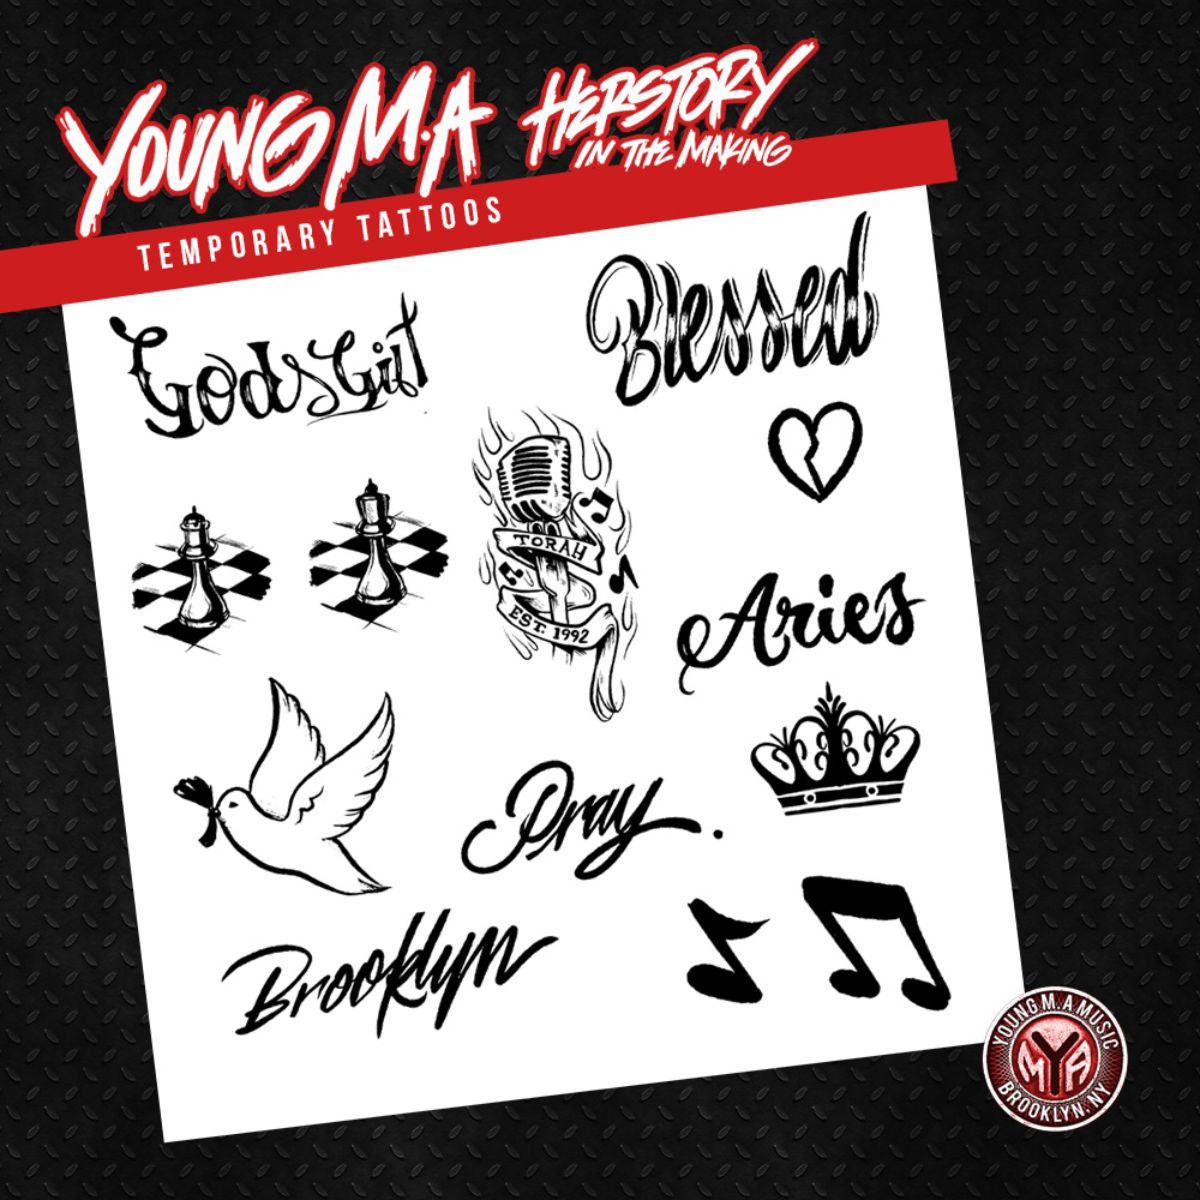 Young M.A. - Herstory In The Making Capsule